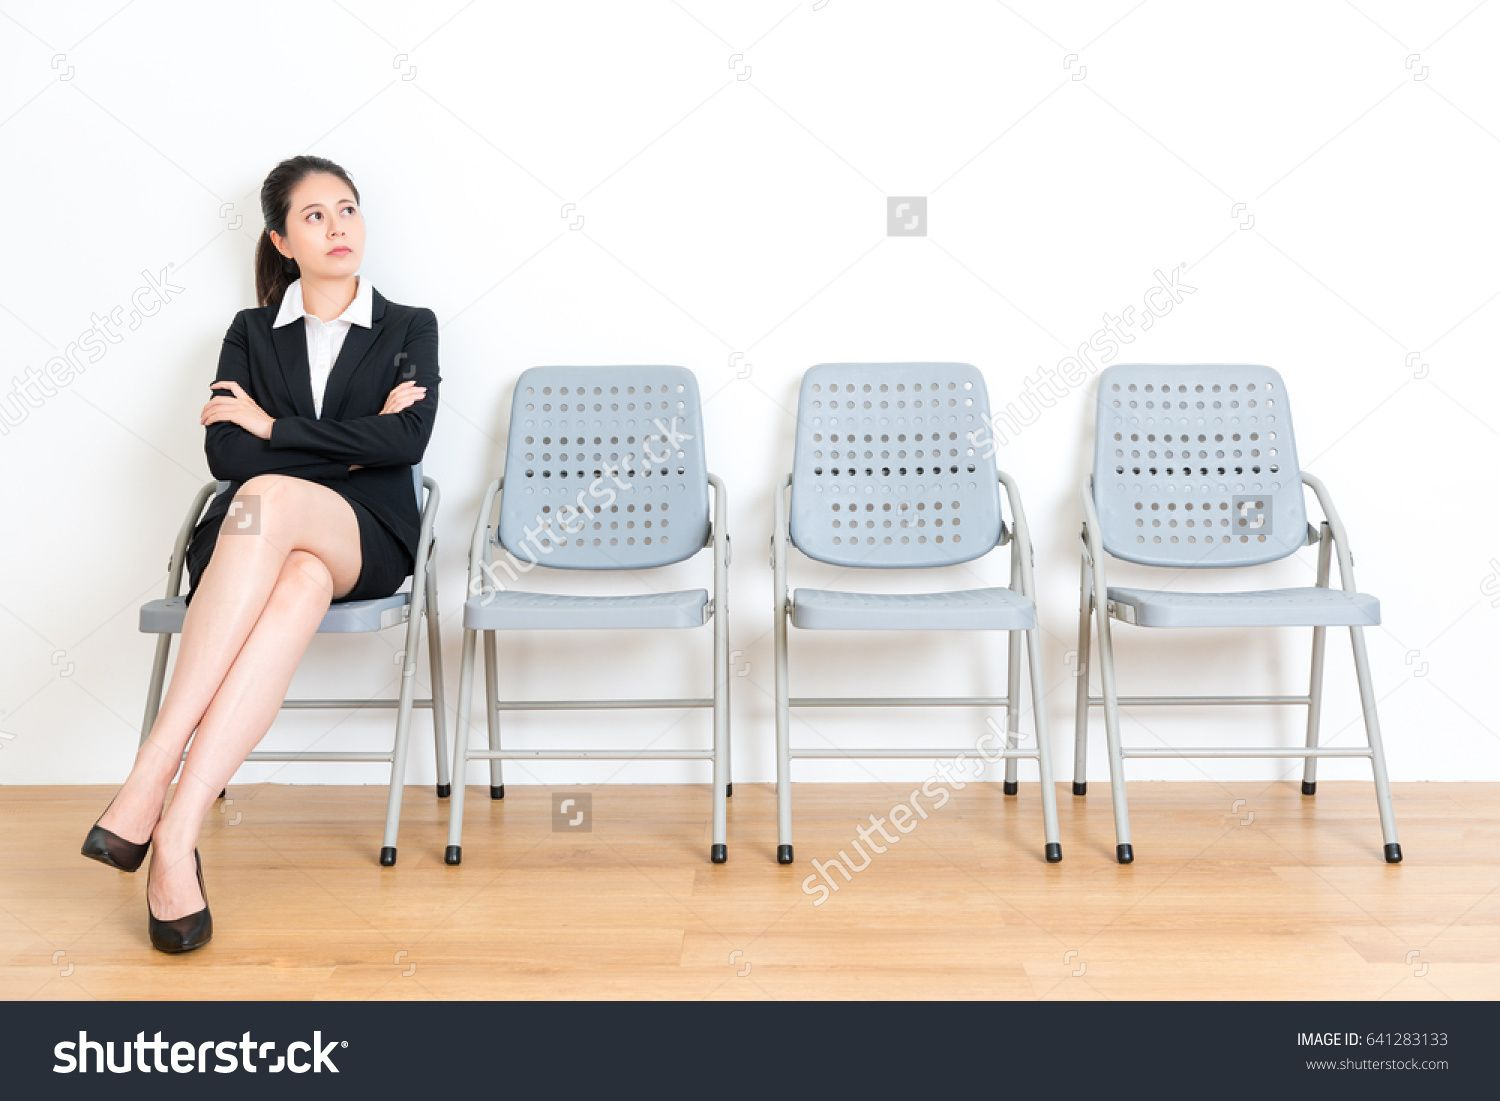 People sitting in waffle chair - Lovely Elegant Business Girl Waiting For Interview Sitting On Wood Floor Chair In White Background And